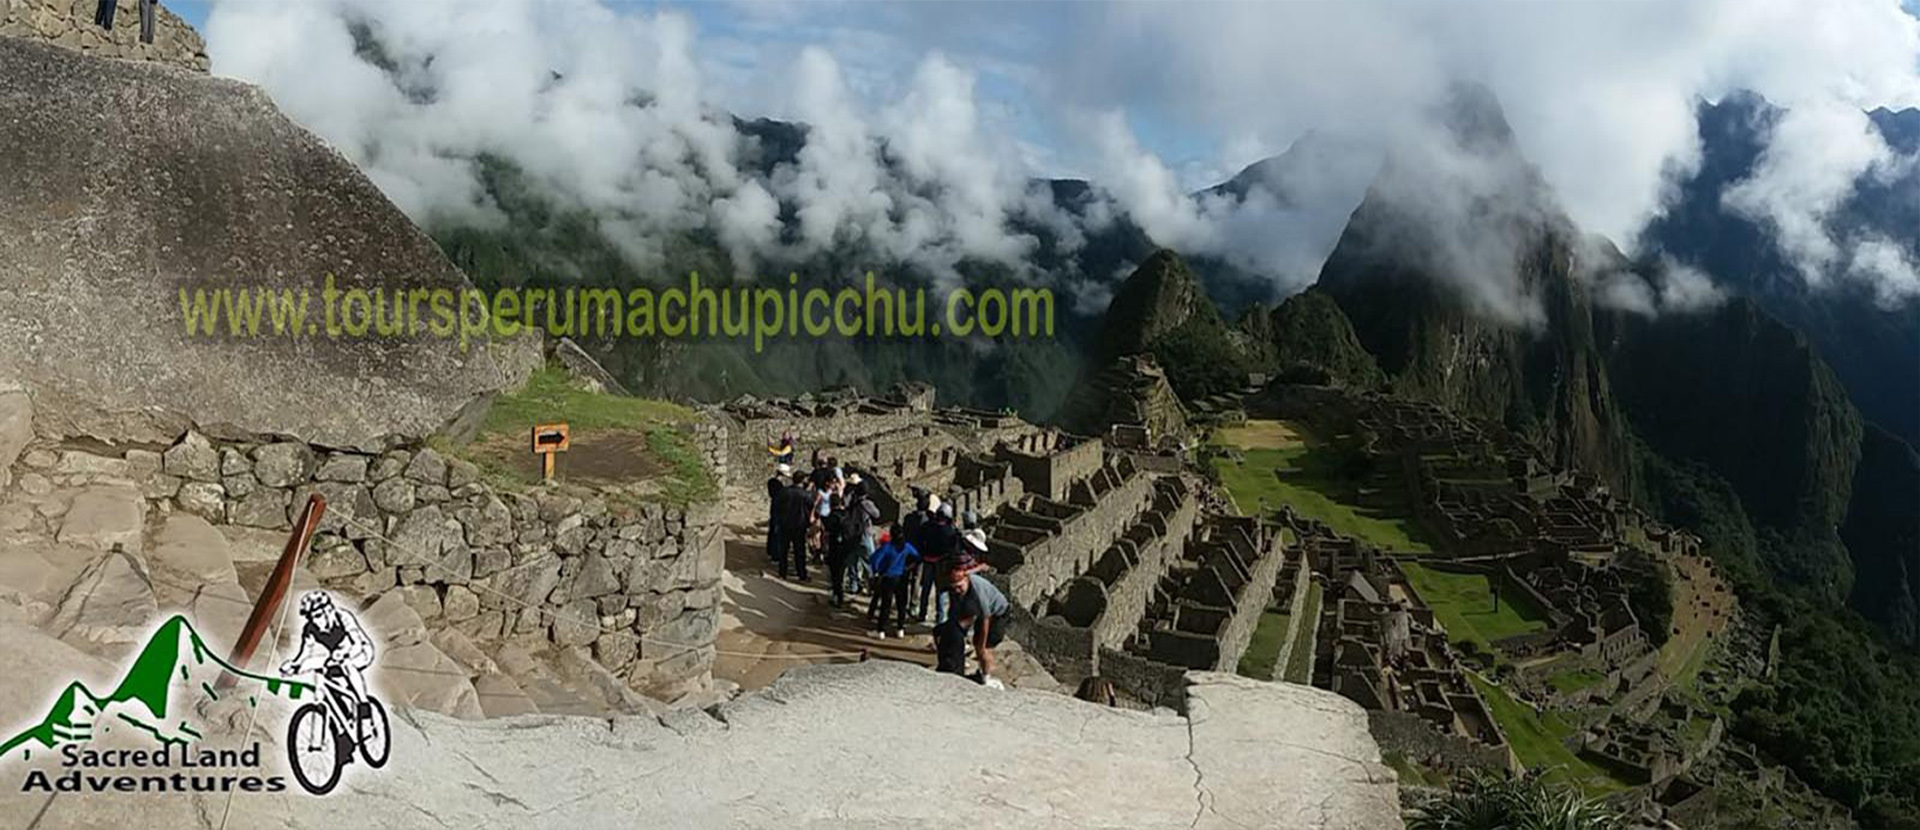 Tour Inka Jungle Trek 4 dias y Montaña Machupicchu - Inka Jungle Trek